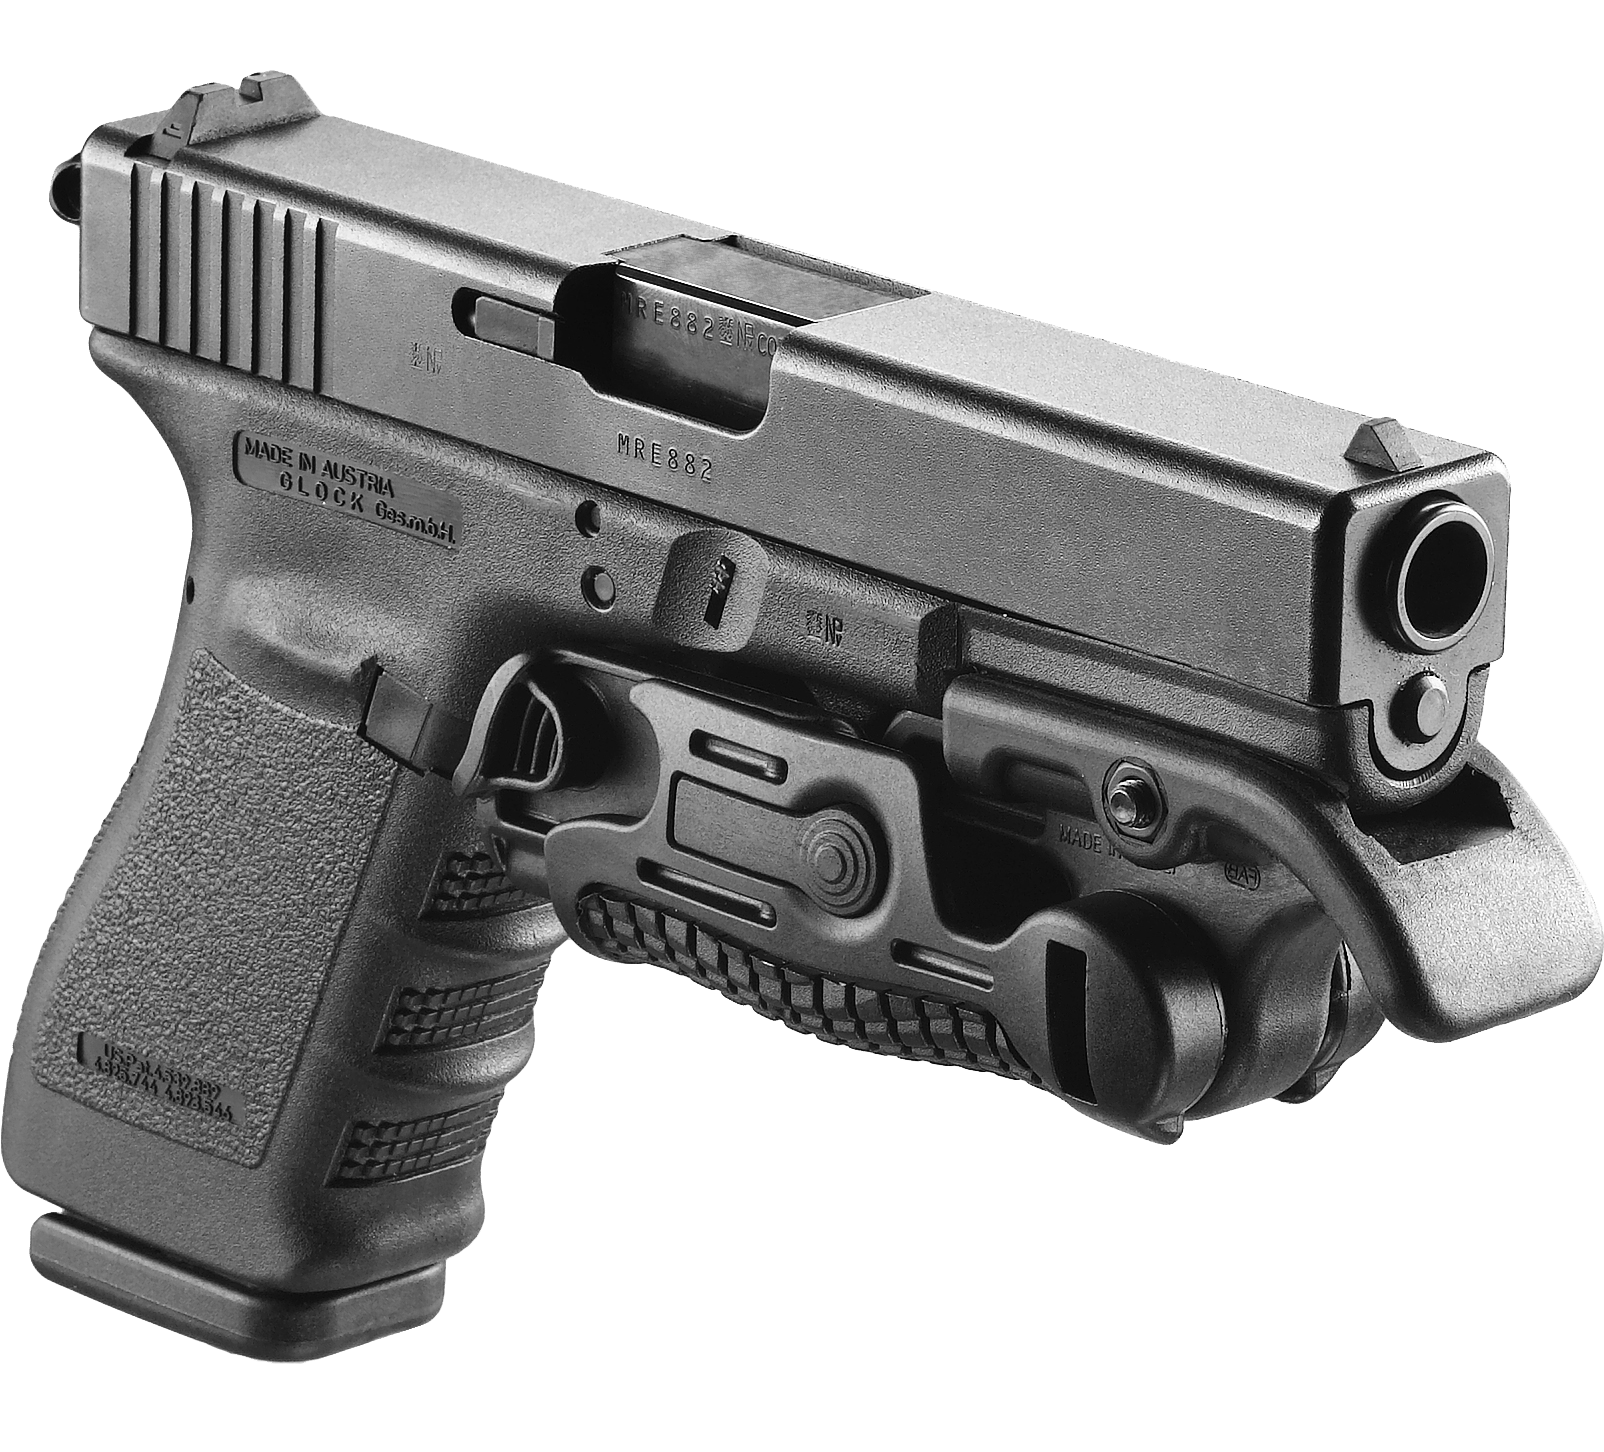 FGGK-S-Integrated-Folding-Foregrip-and-Trigger-Cover